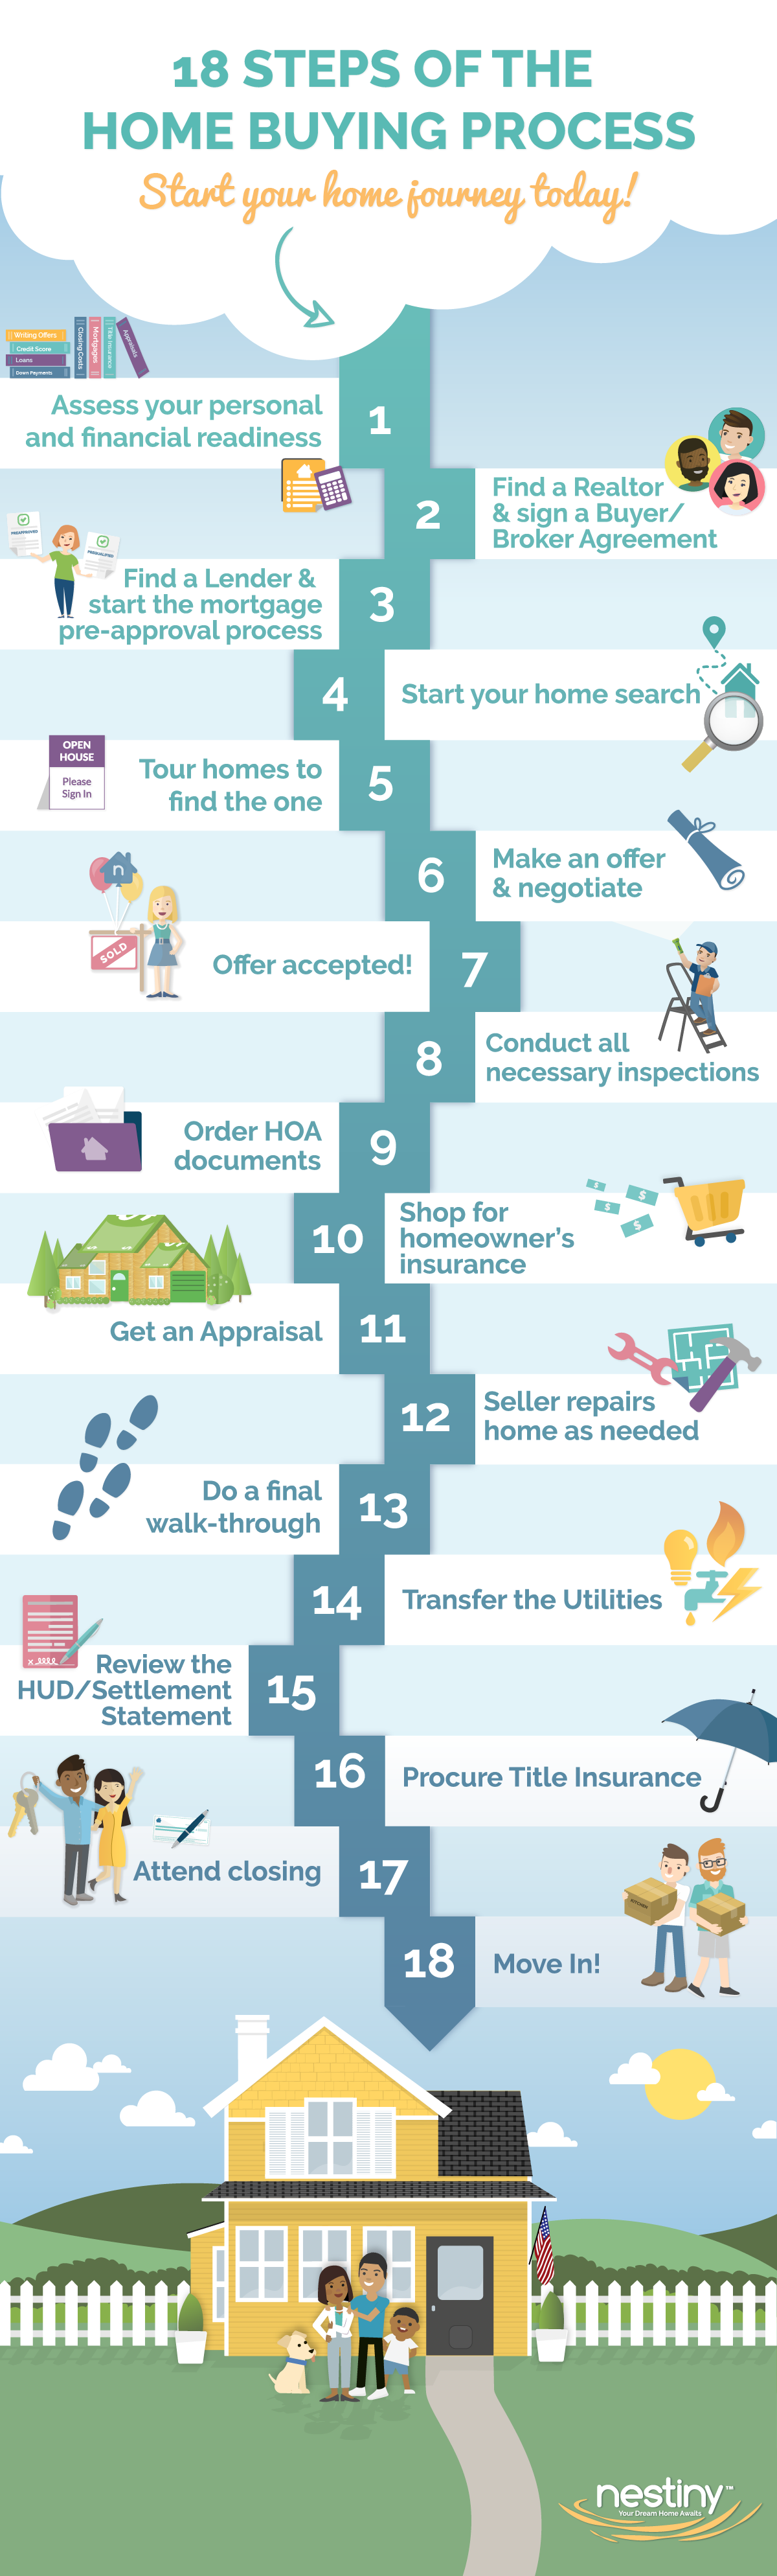 18 Steps in the Homebuying Process Infographic